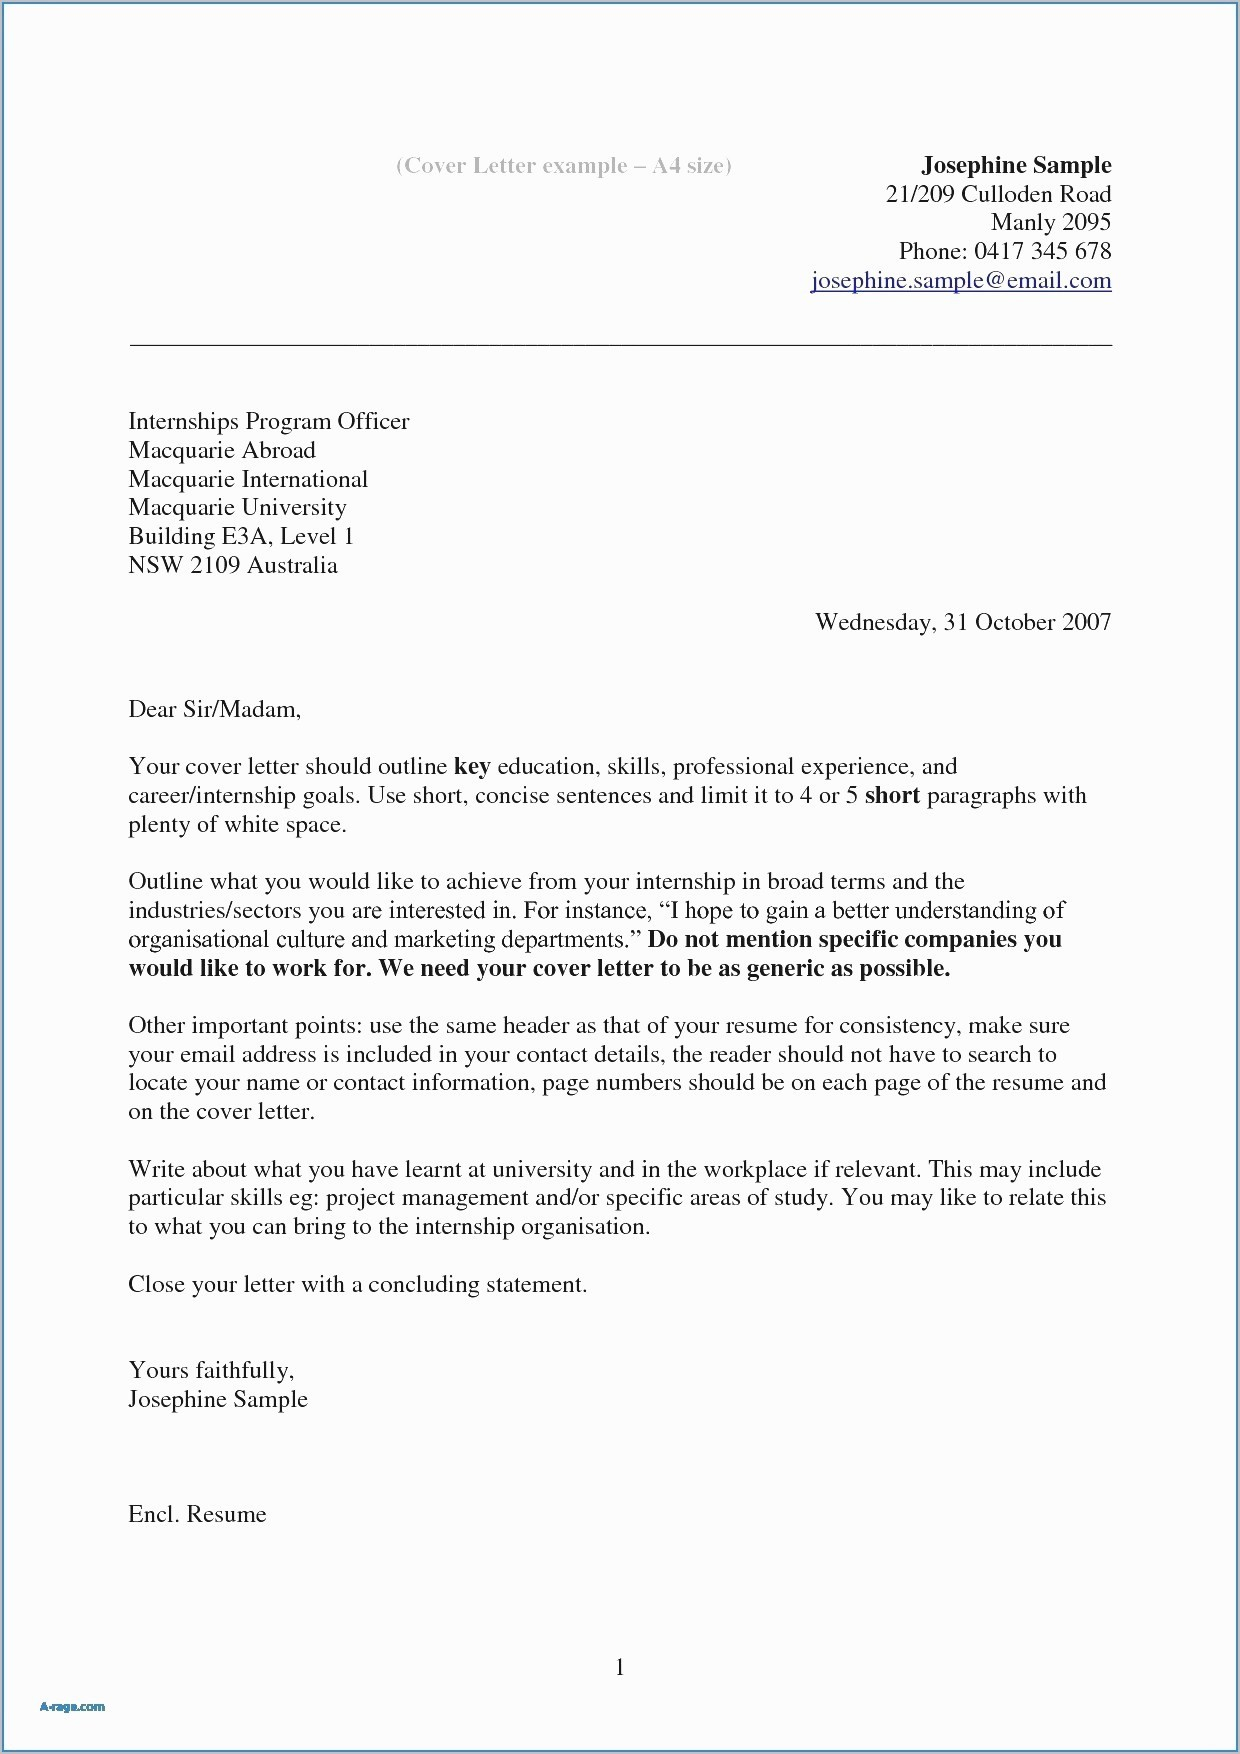 Help Desk Cover Letter Template - Resume Writing Panies Awesome Resume Writing Panies Lovely Email